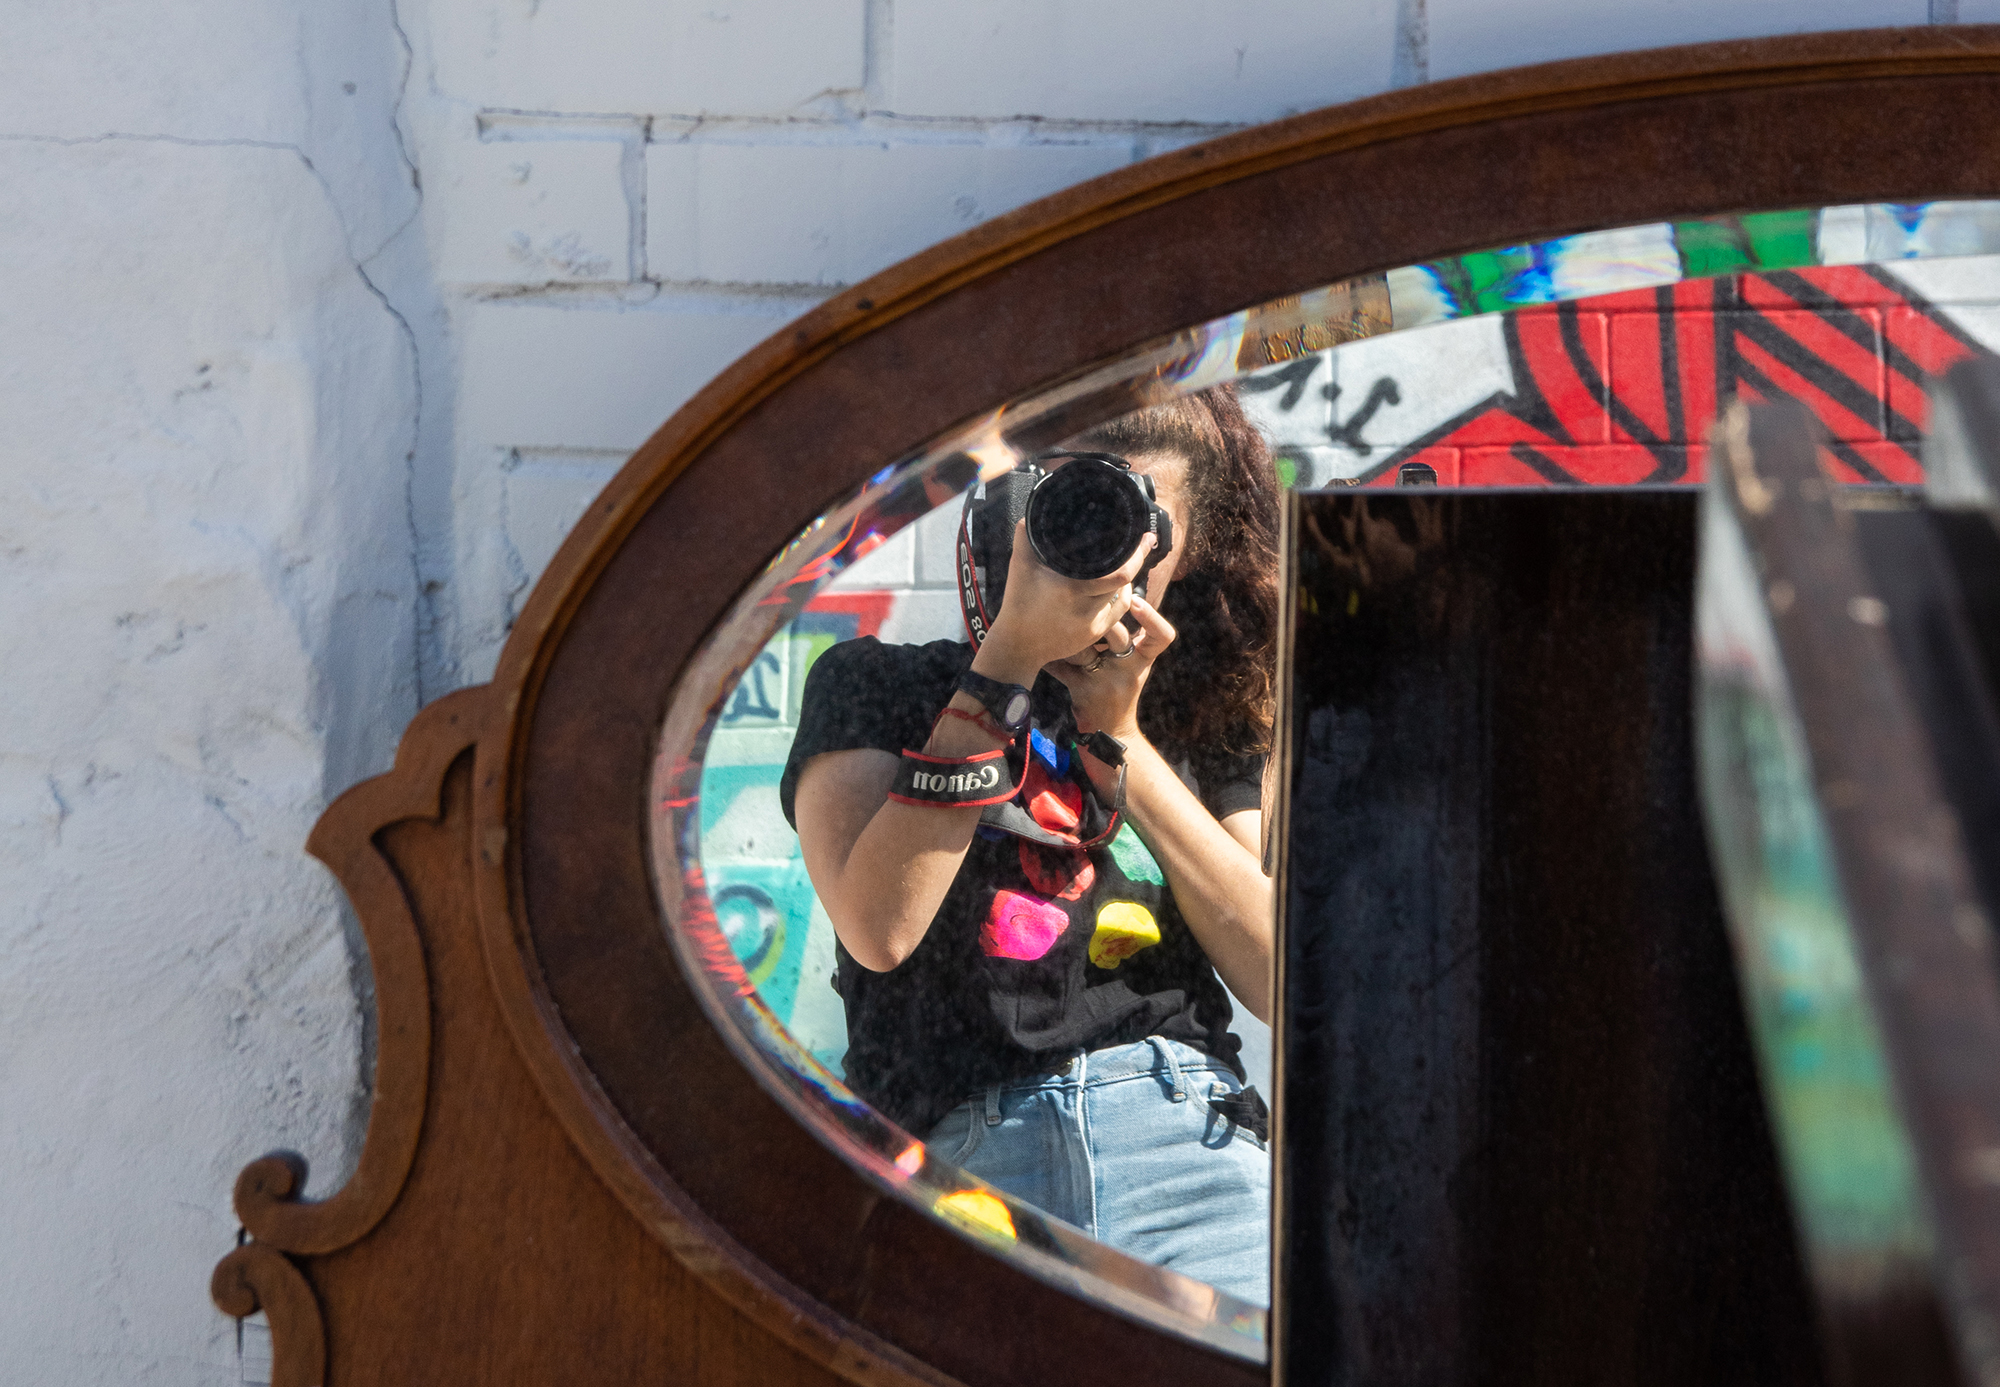 A person photographing themselves in a mirror